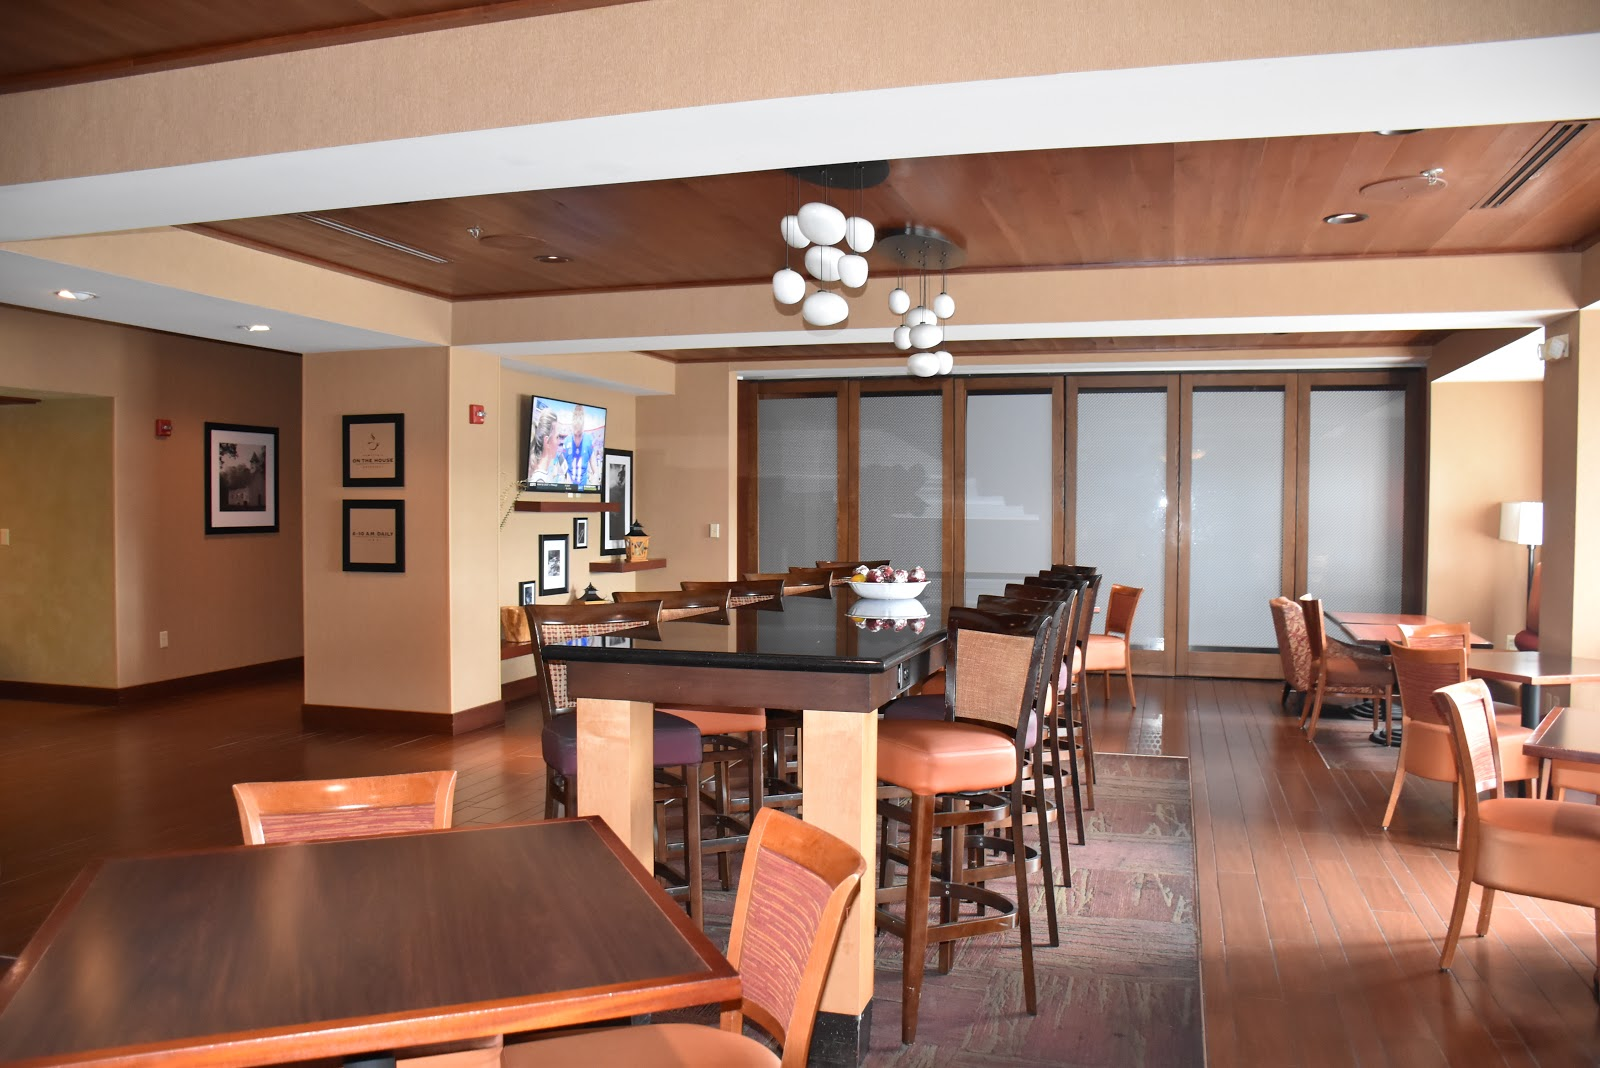 The Best Hotel for Families in Pigeon Forge: Hampton Inn by Hilton